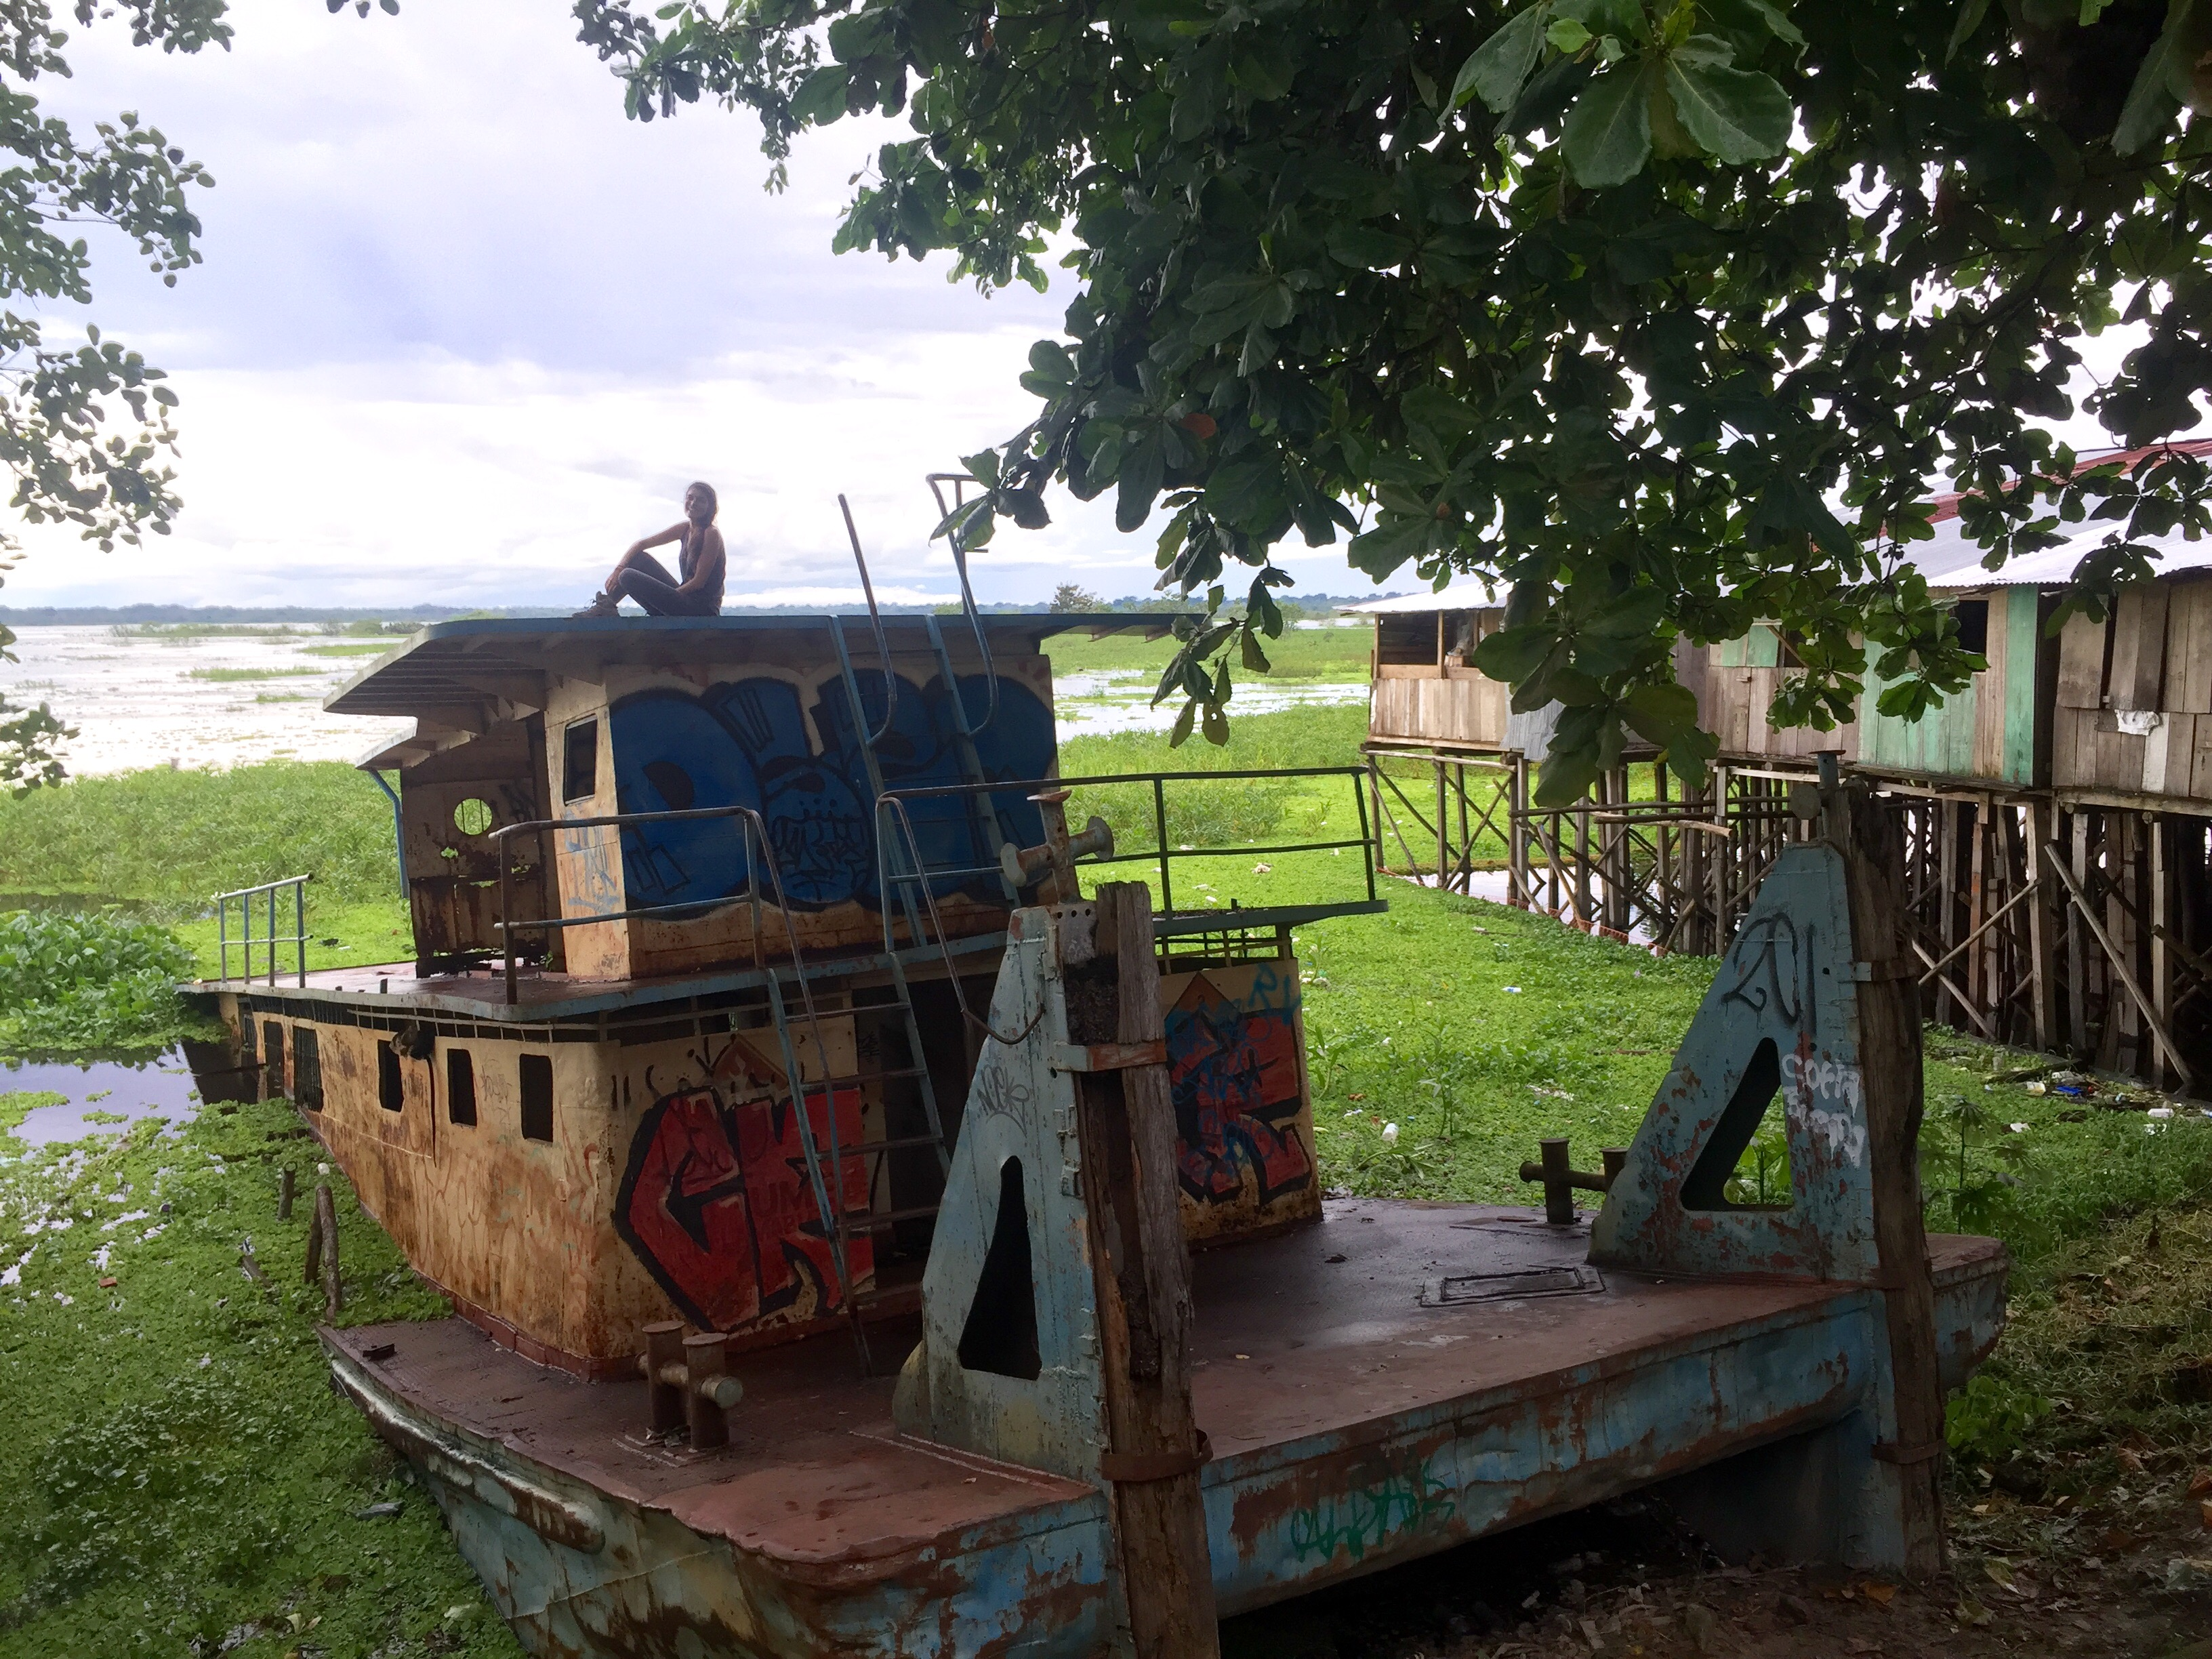 Abandoned boat in Iquitos.